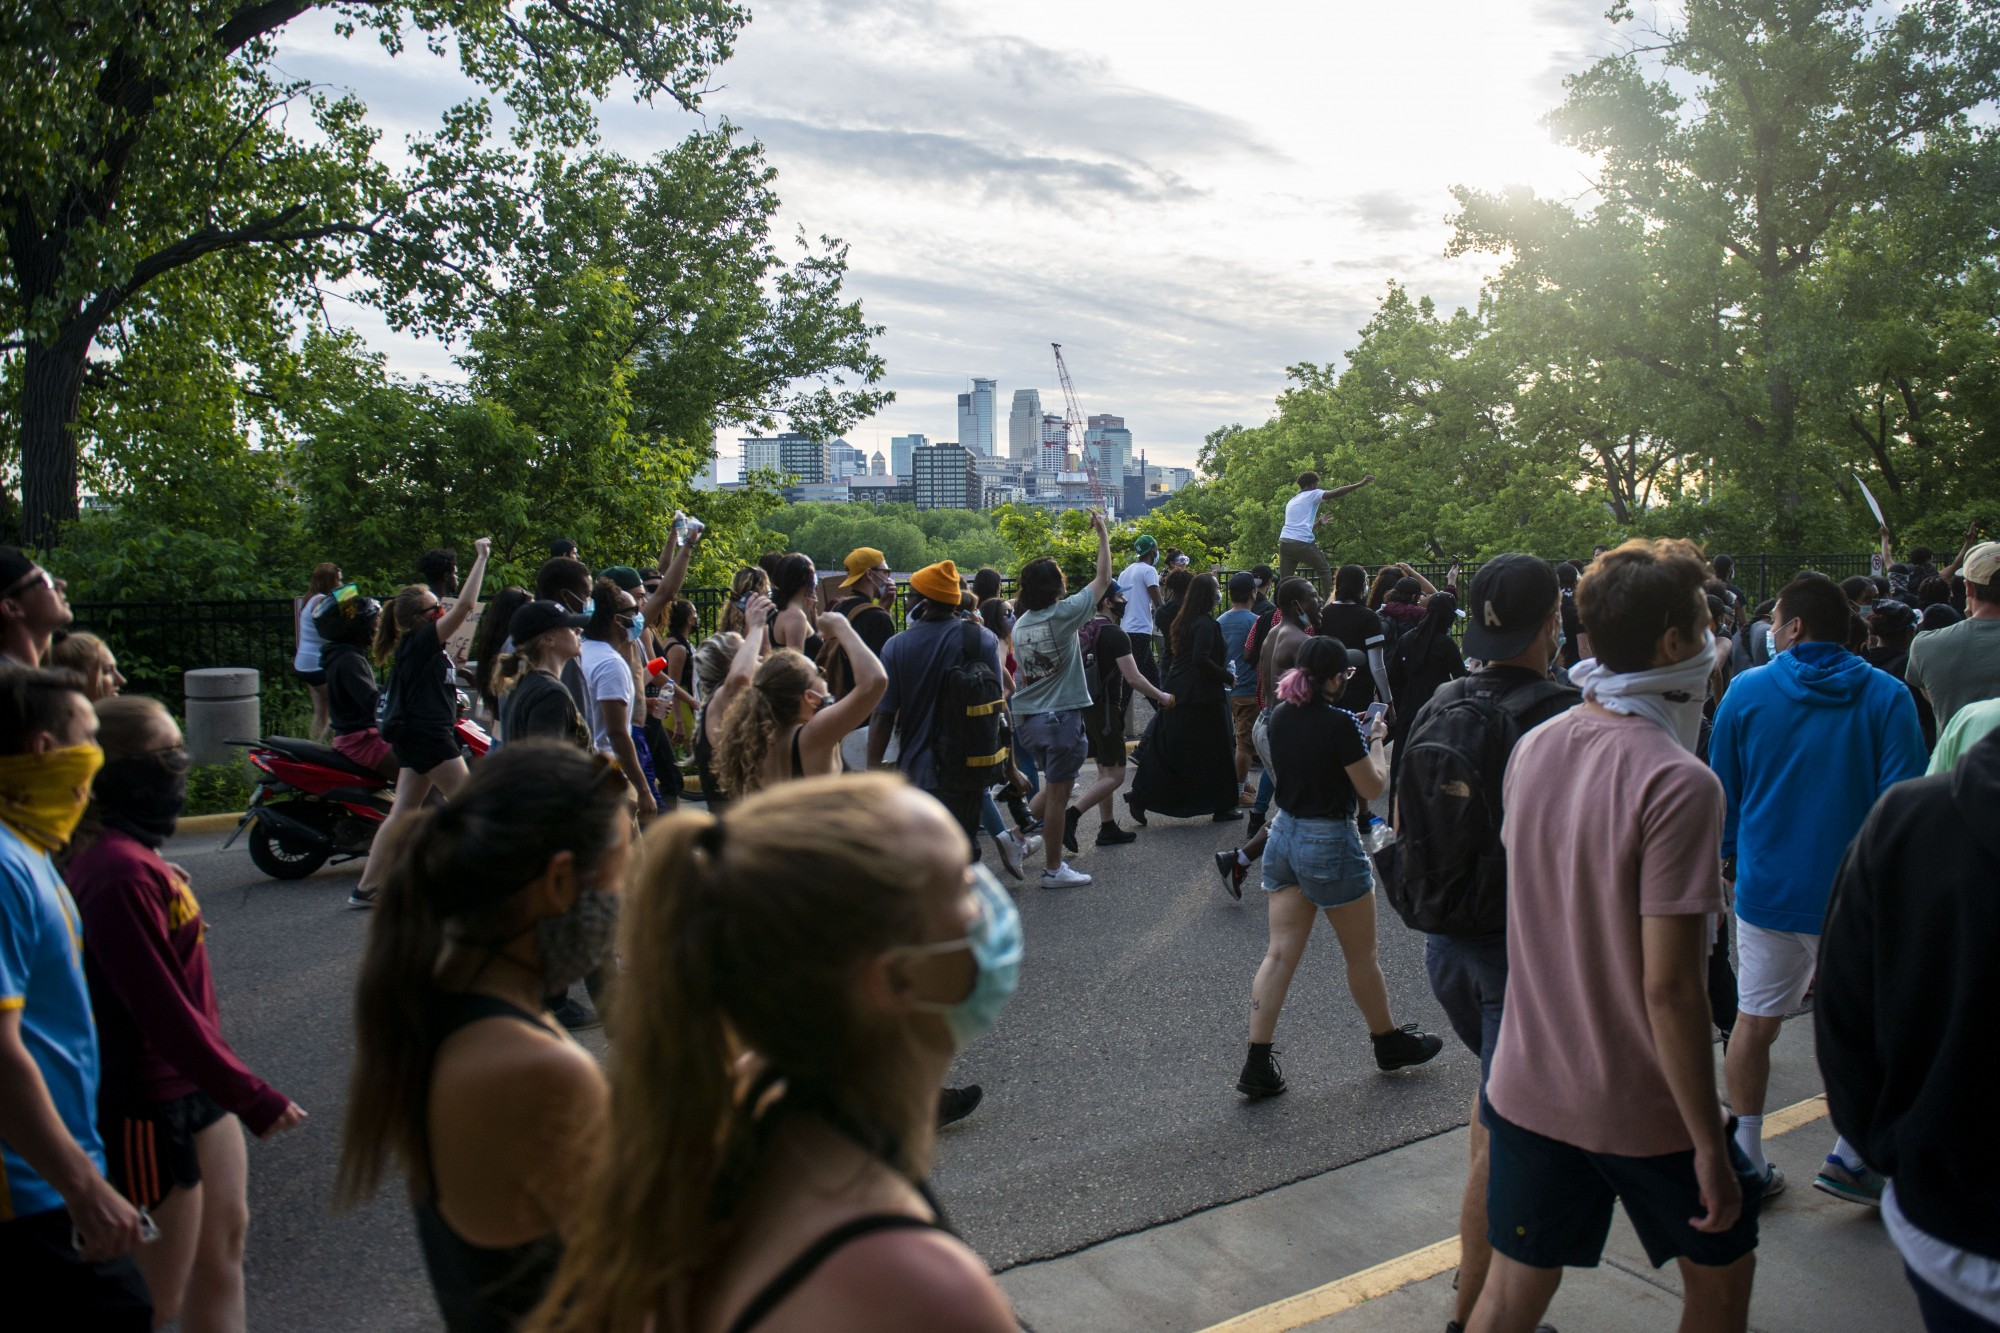 Demonstrators make their way through parts of campus as curfew nears, eventually crossing the Stone Arch Bridge and into downtown on Sunday, May 31.